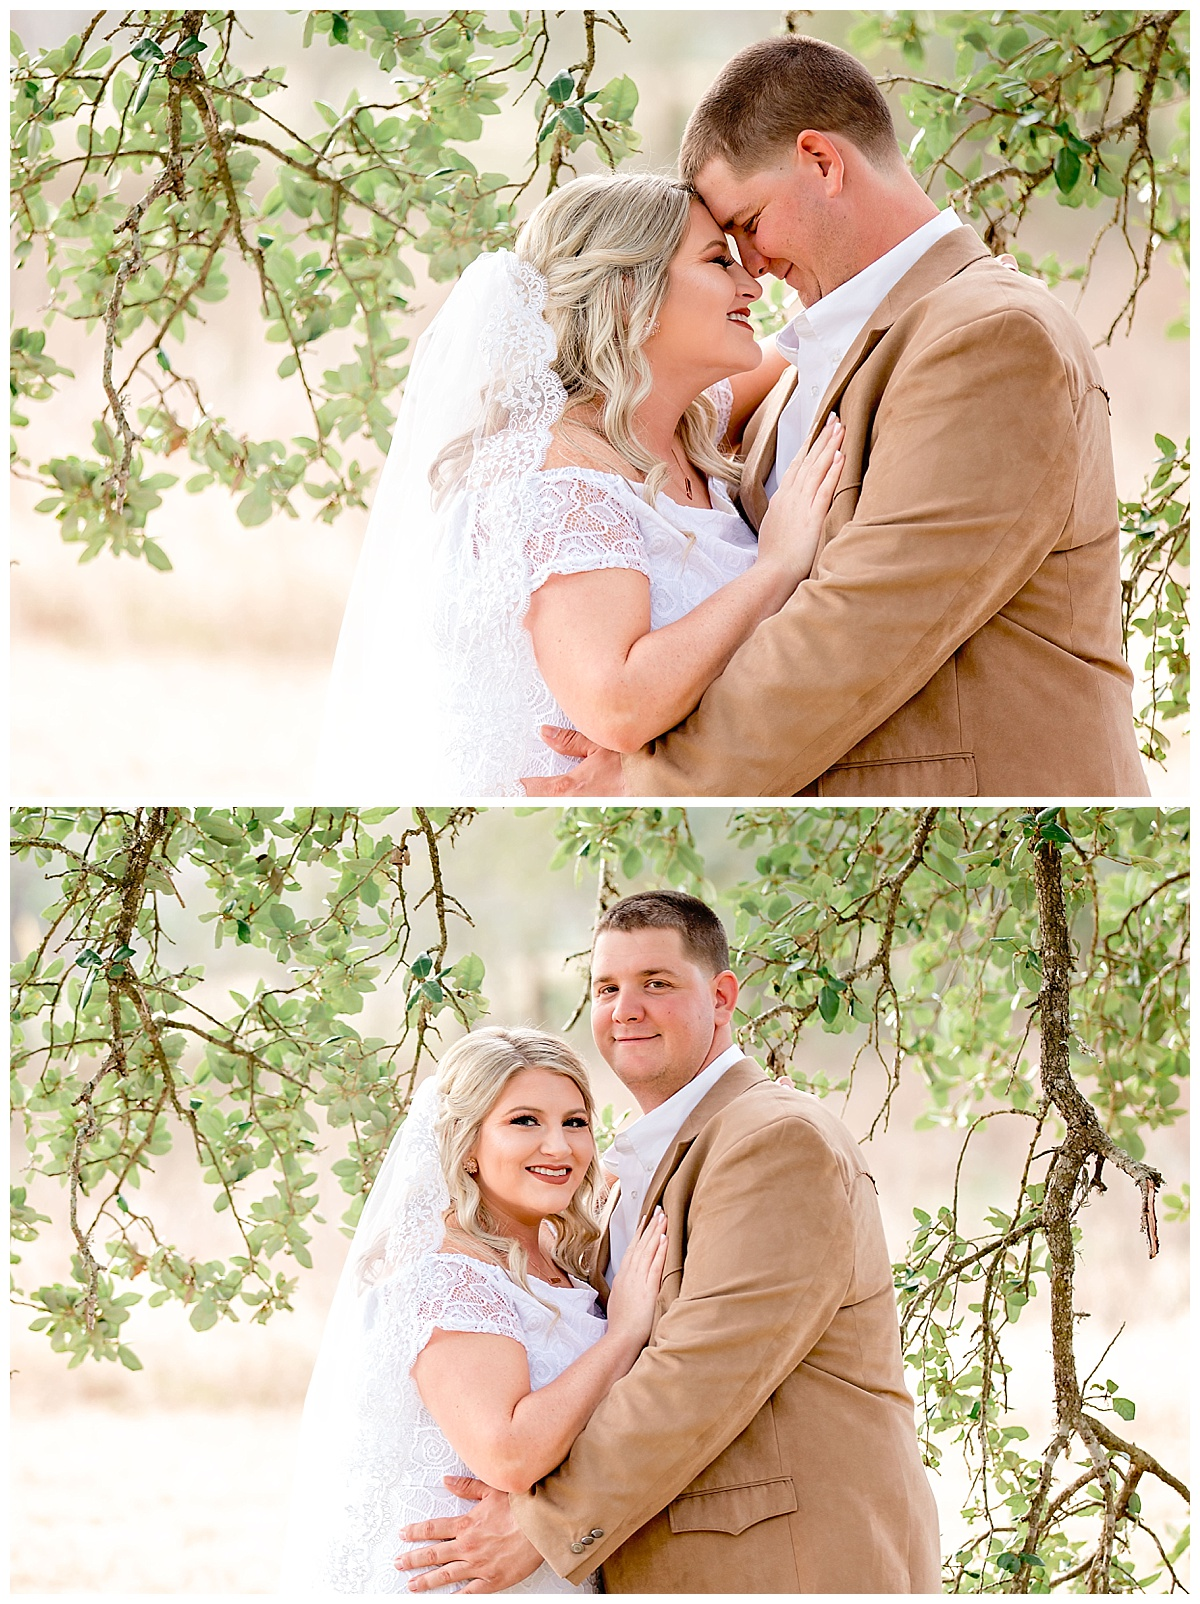 Wedding-Photographer-LaVernia-Texas-Ceremony-Under-the-Trees-Bride-Groom-Fall-McDonald-Carly-Barton-Photography_0016.jpg